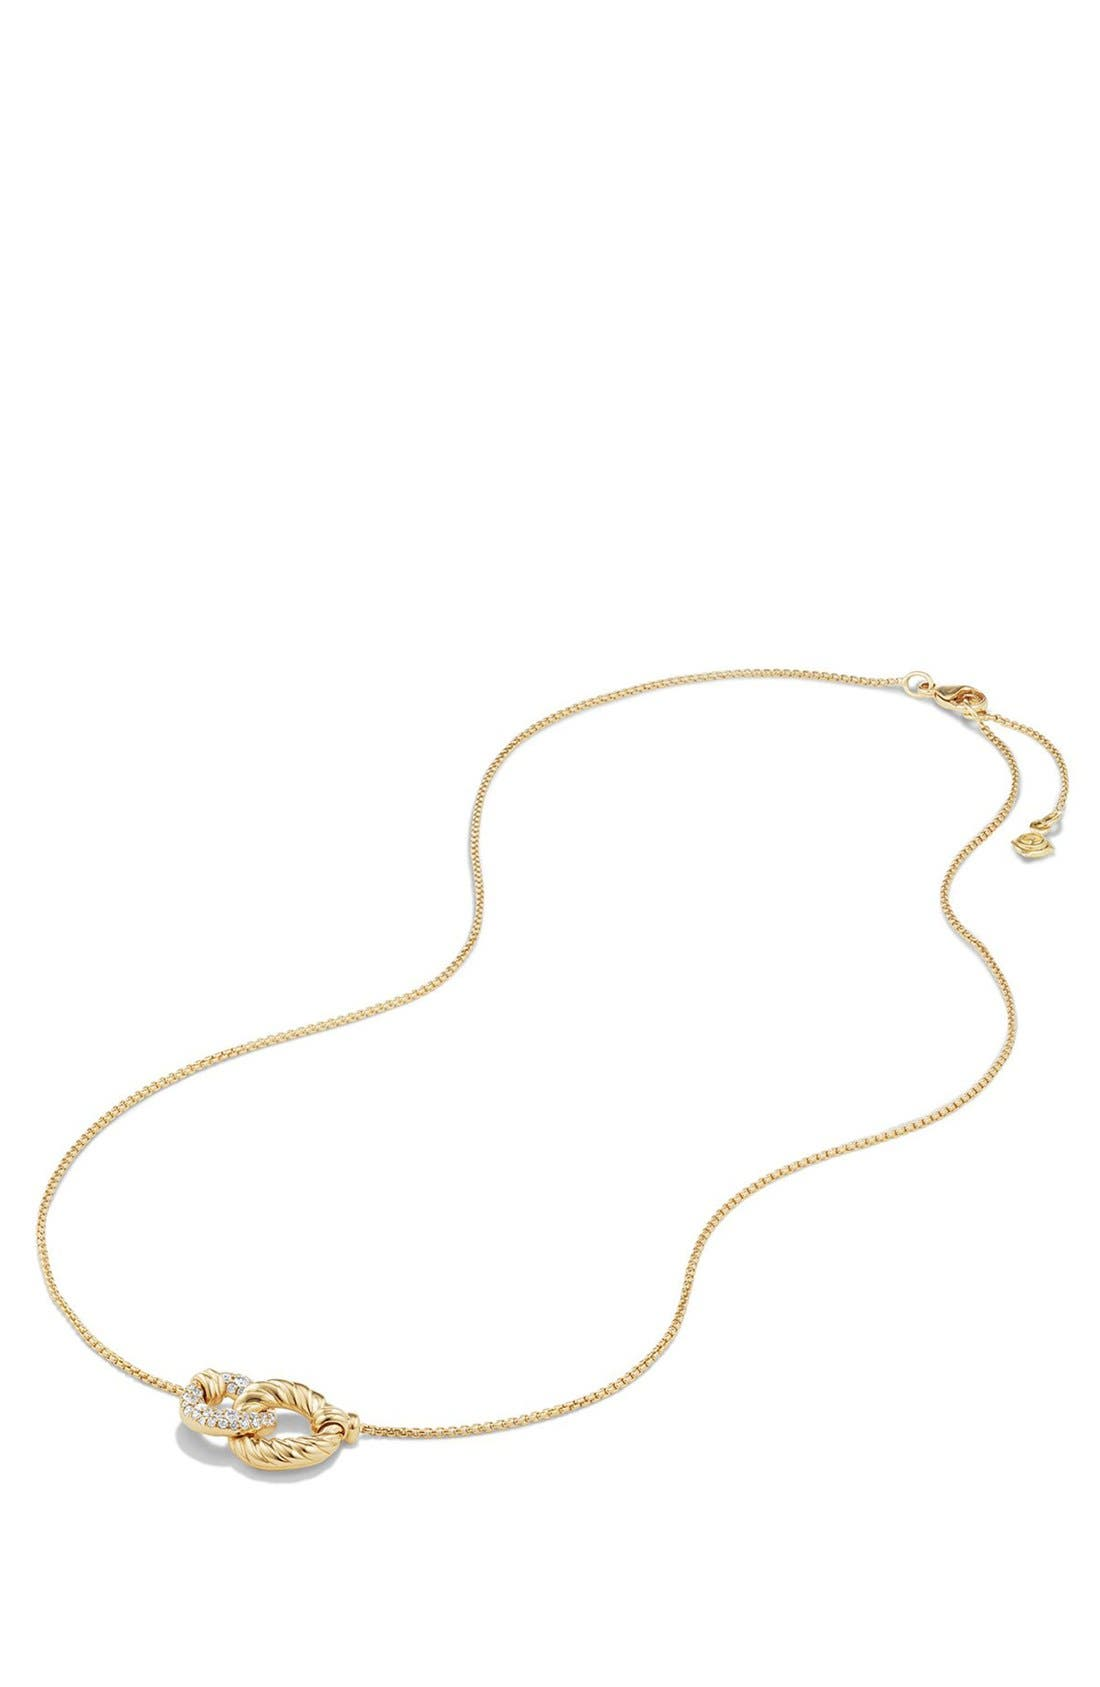 Belmont Extra-Small Double Curb Link Necklace with Diamonds in 18K Gold,                             Alternate thumbnail 3, color,                             YELLOW GOLD/ DIAMOND